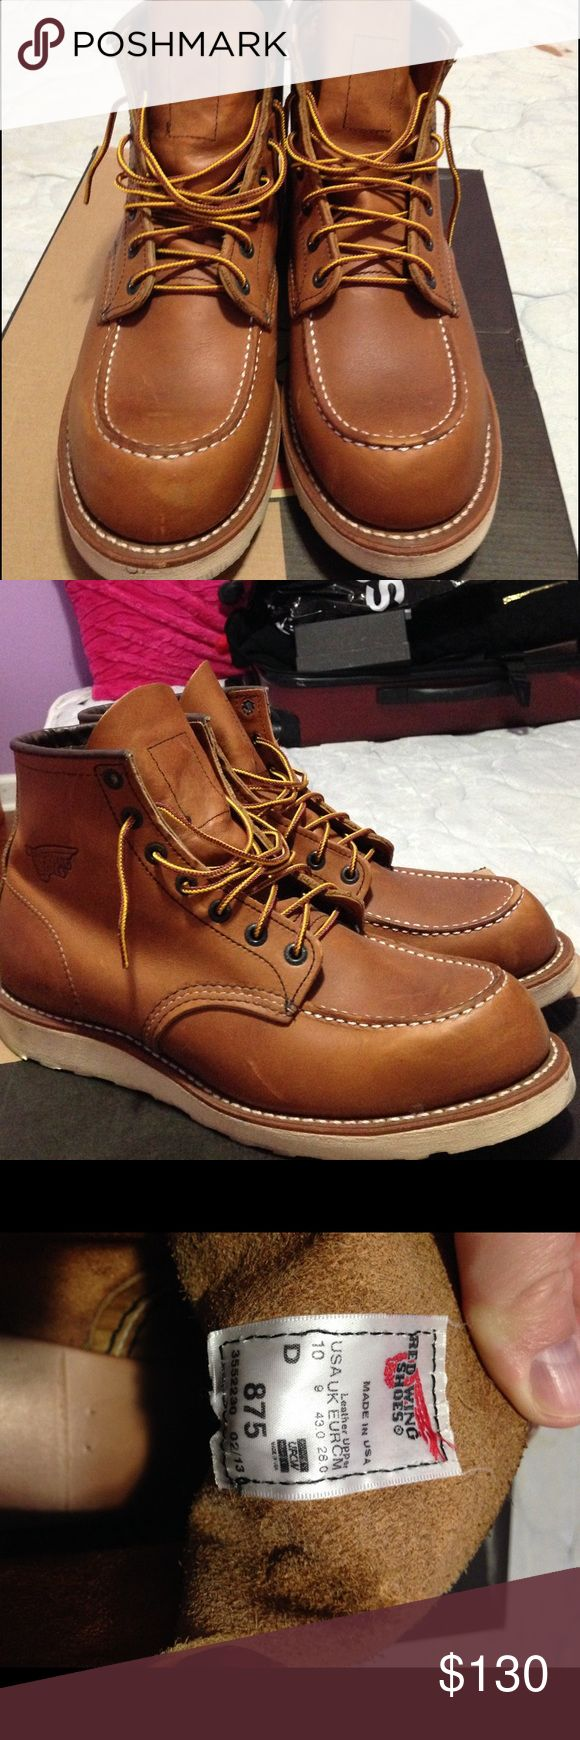 Boots red wing shoes Red Wing boots size 10 model  875 theirs shoes have been wore outside 2 times and look brand new in perfect condition color brown Red Wing Shoes Shoes Boots